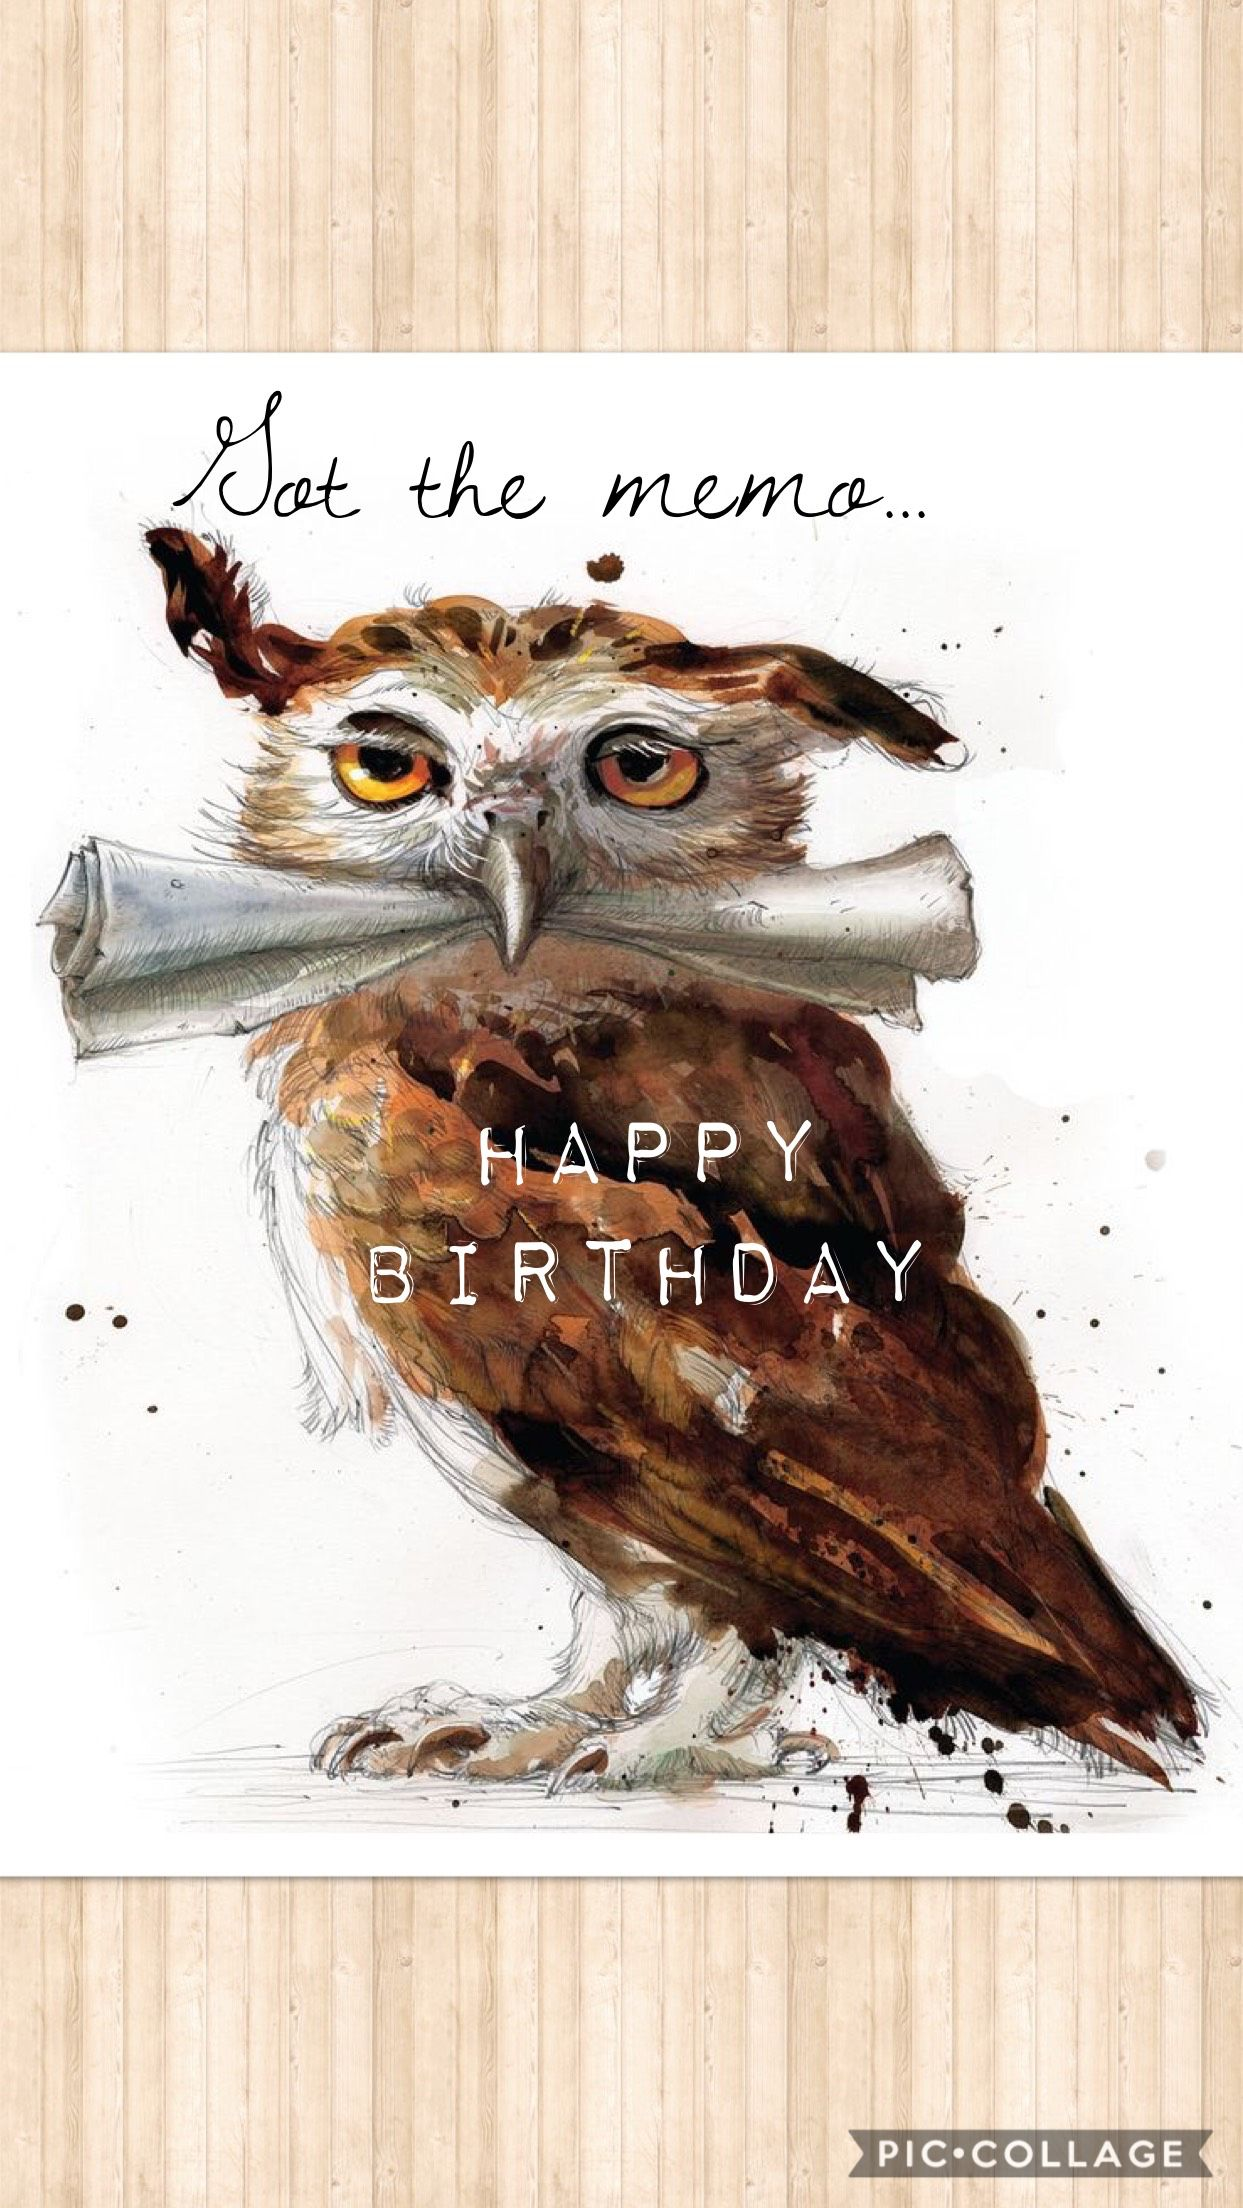 Pin by angie mahurin on birthday pinterest happy birthday old friendhappy birthday song funnyhappy birthday womanbirthday cartoonhappy 40th birthdaywomen birthdayhappy birthday greetingsgetting old quotes kristyandbryce Gallery